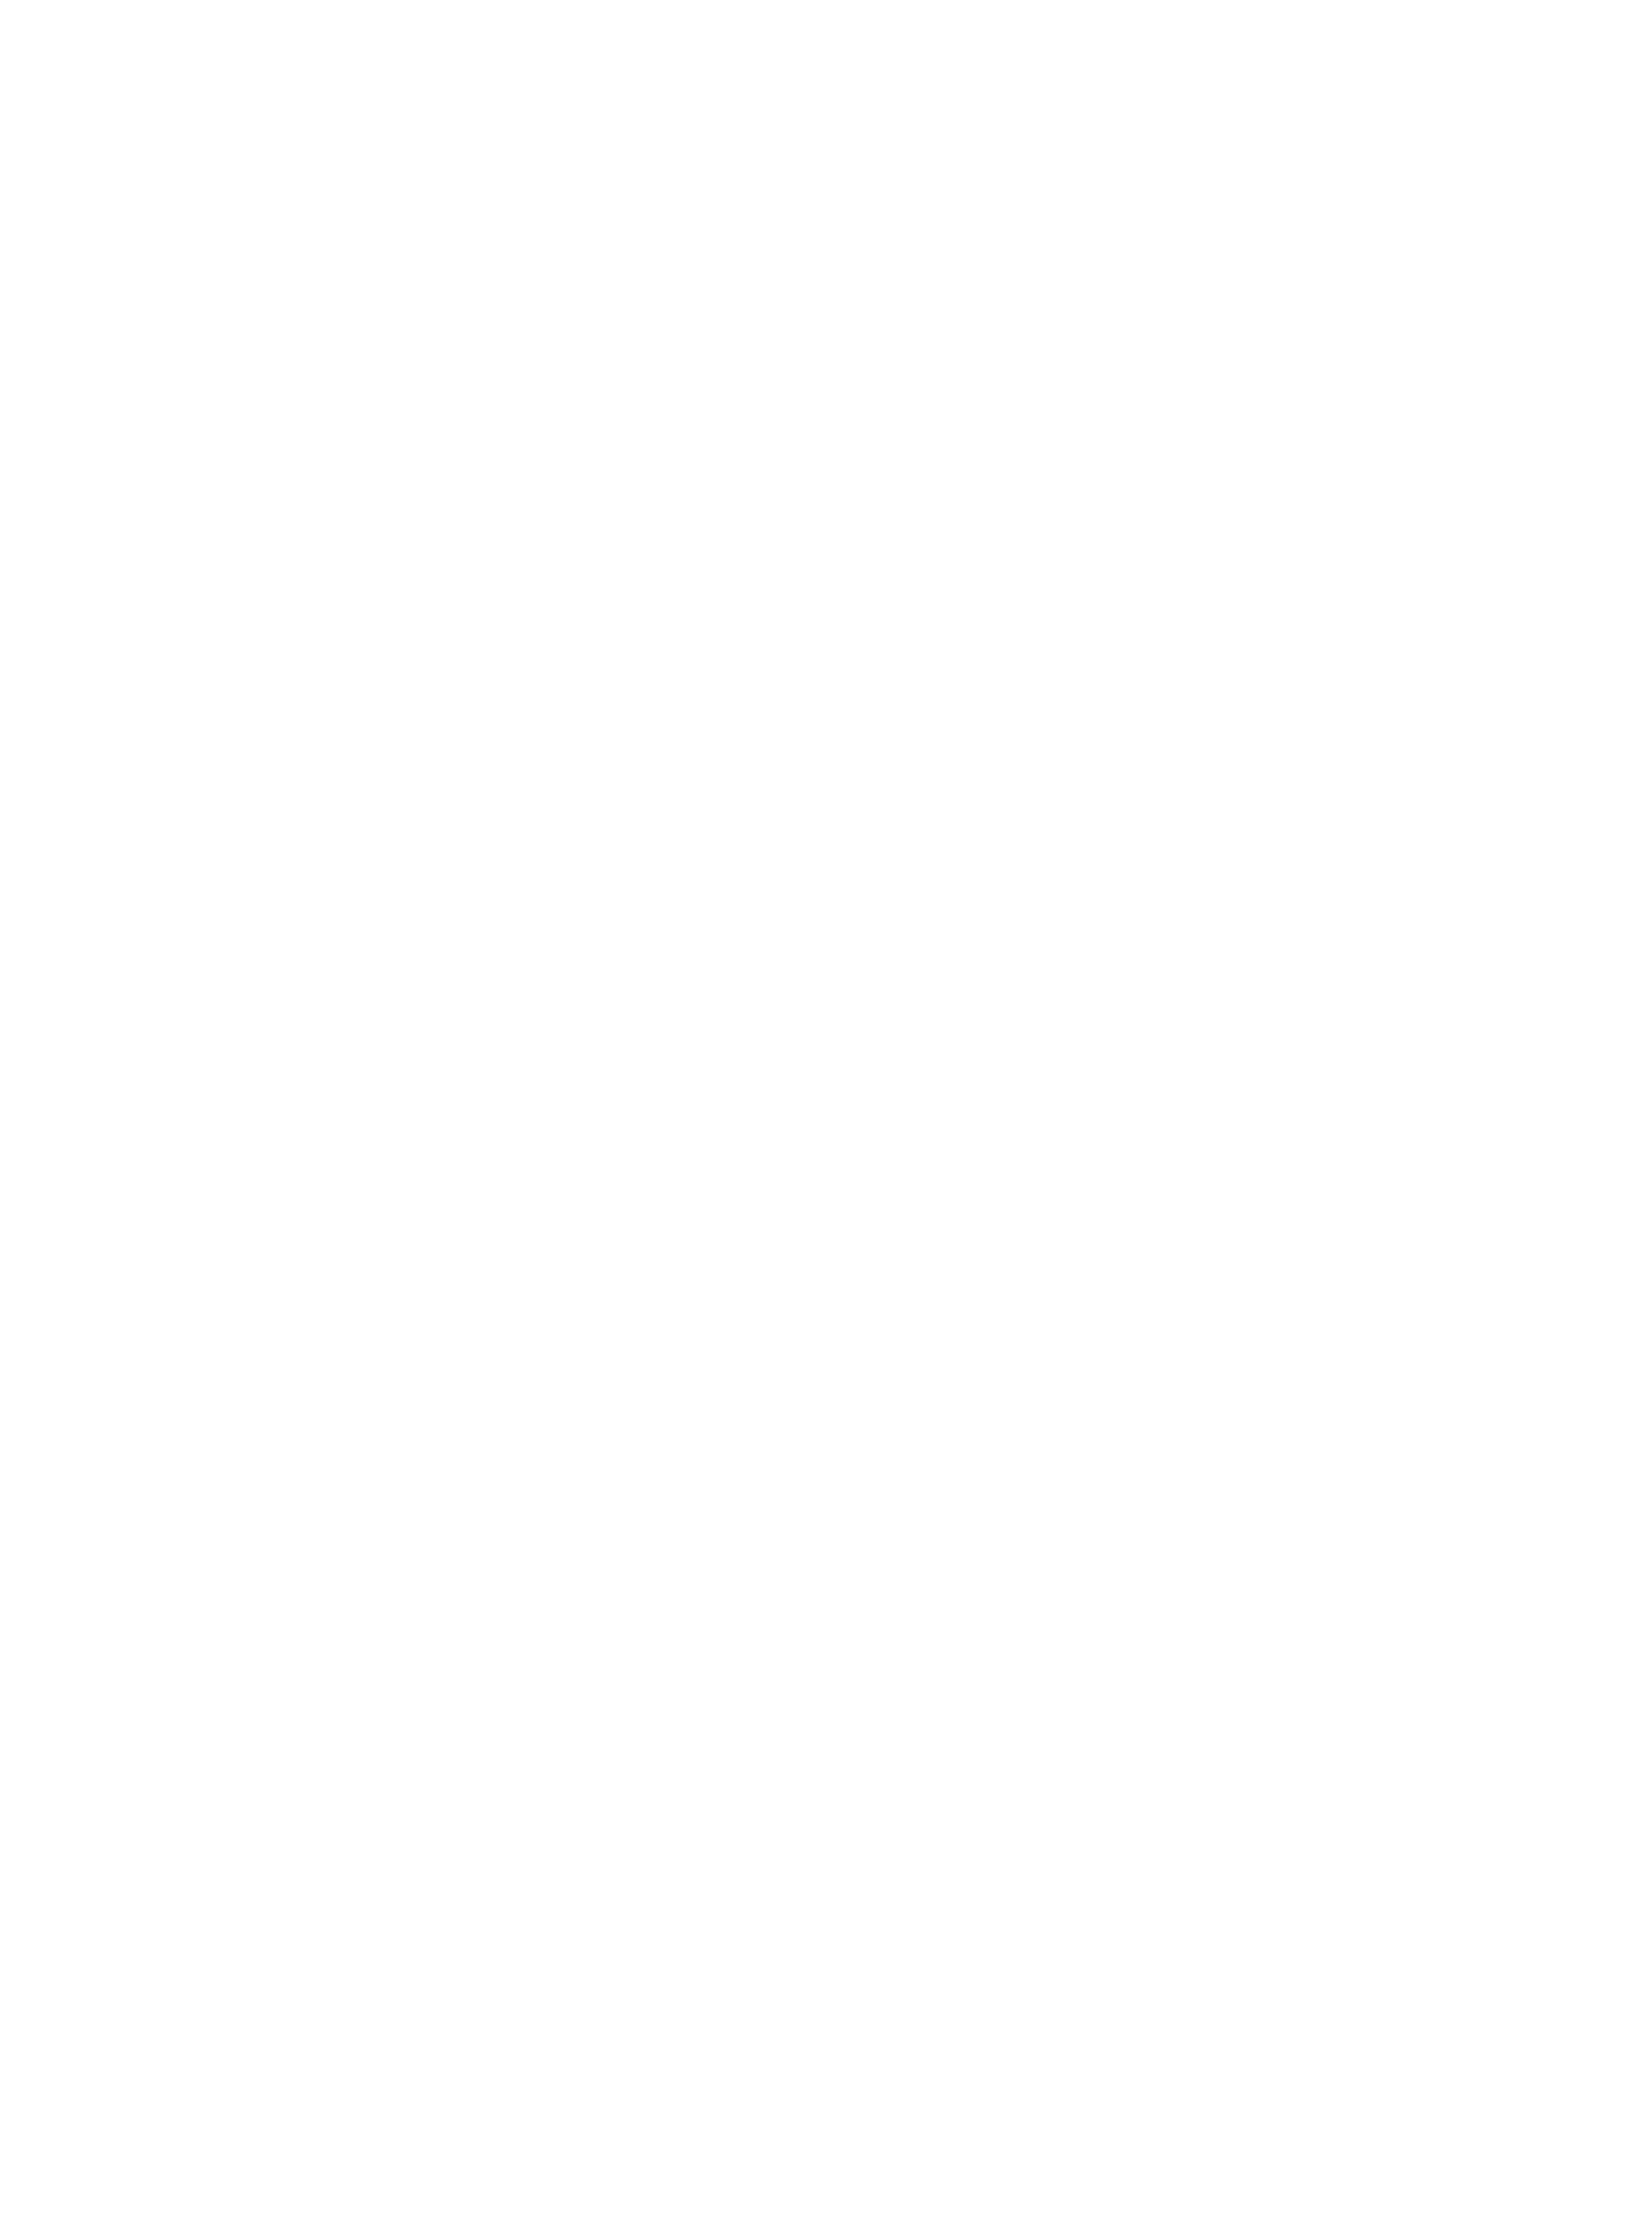 Default avatar png. How to add new